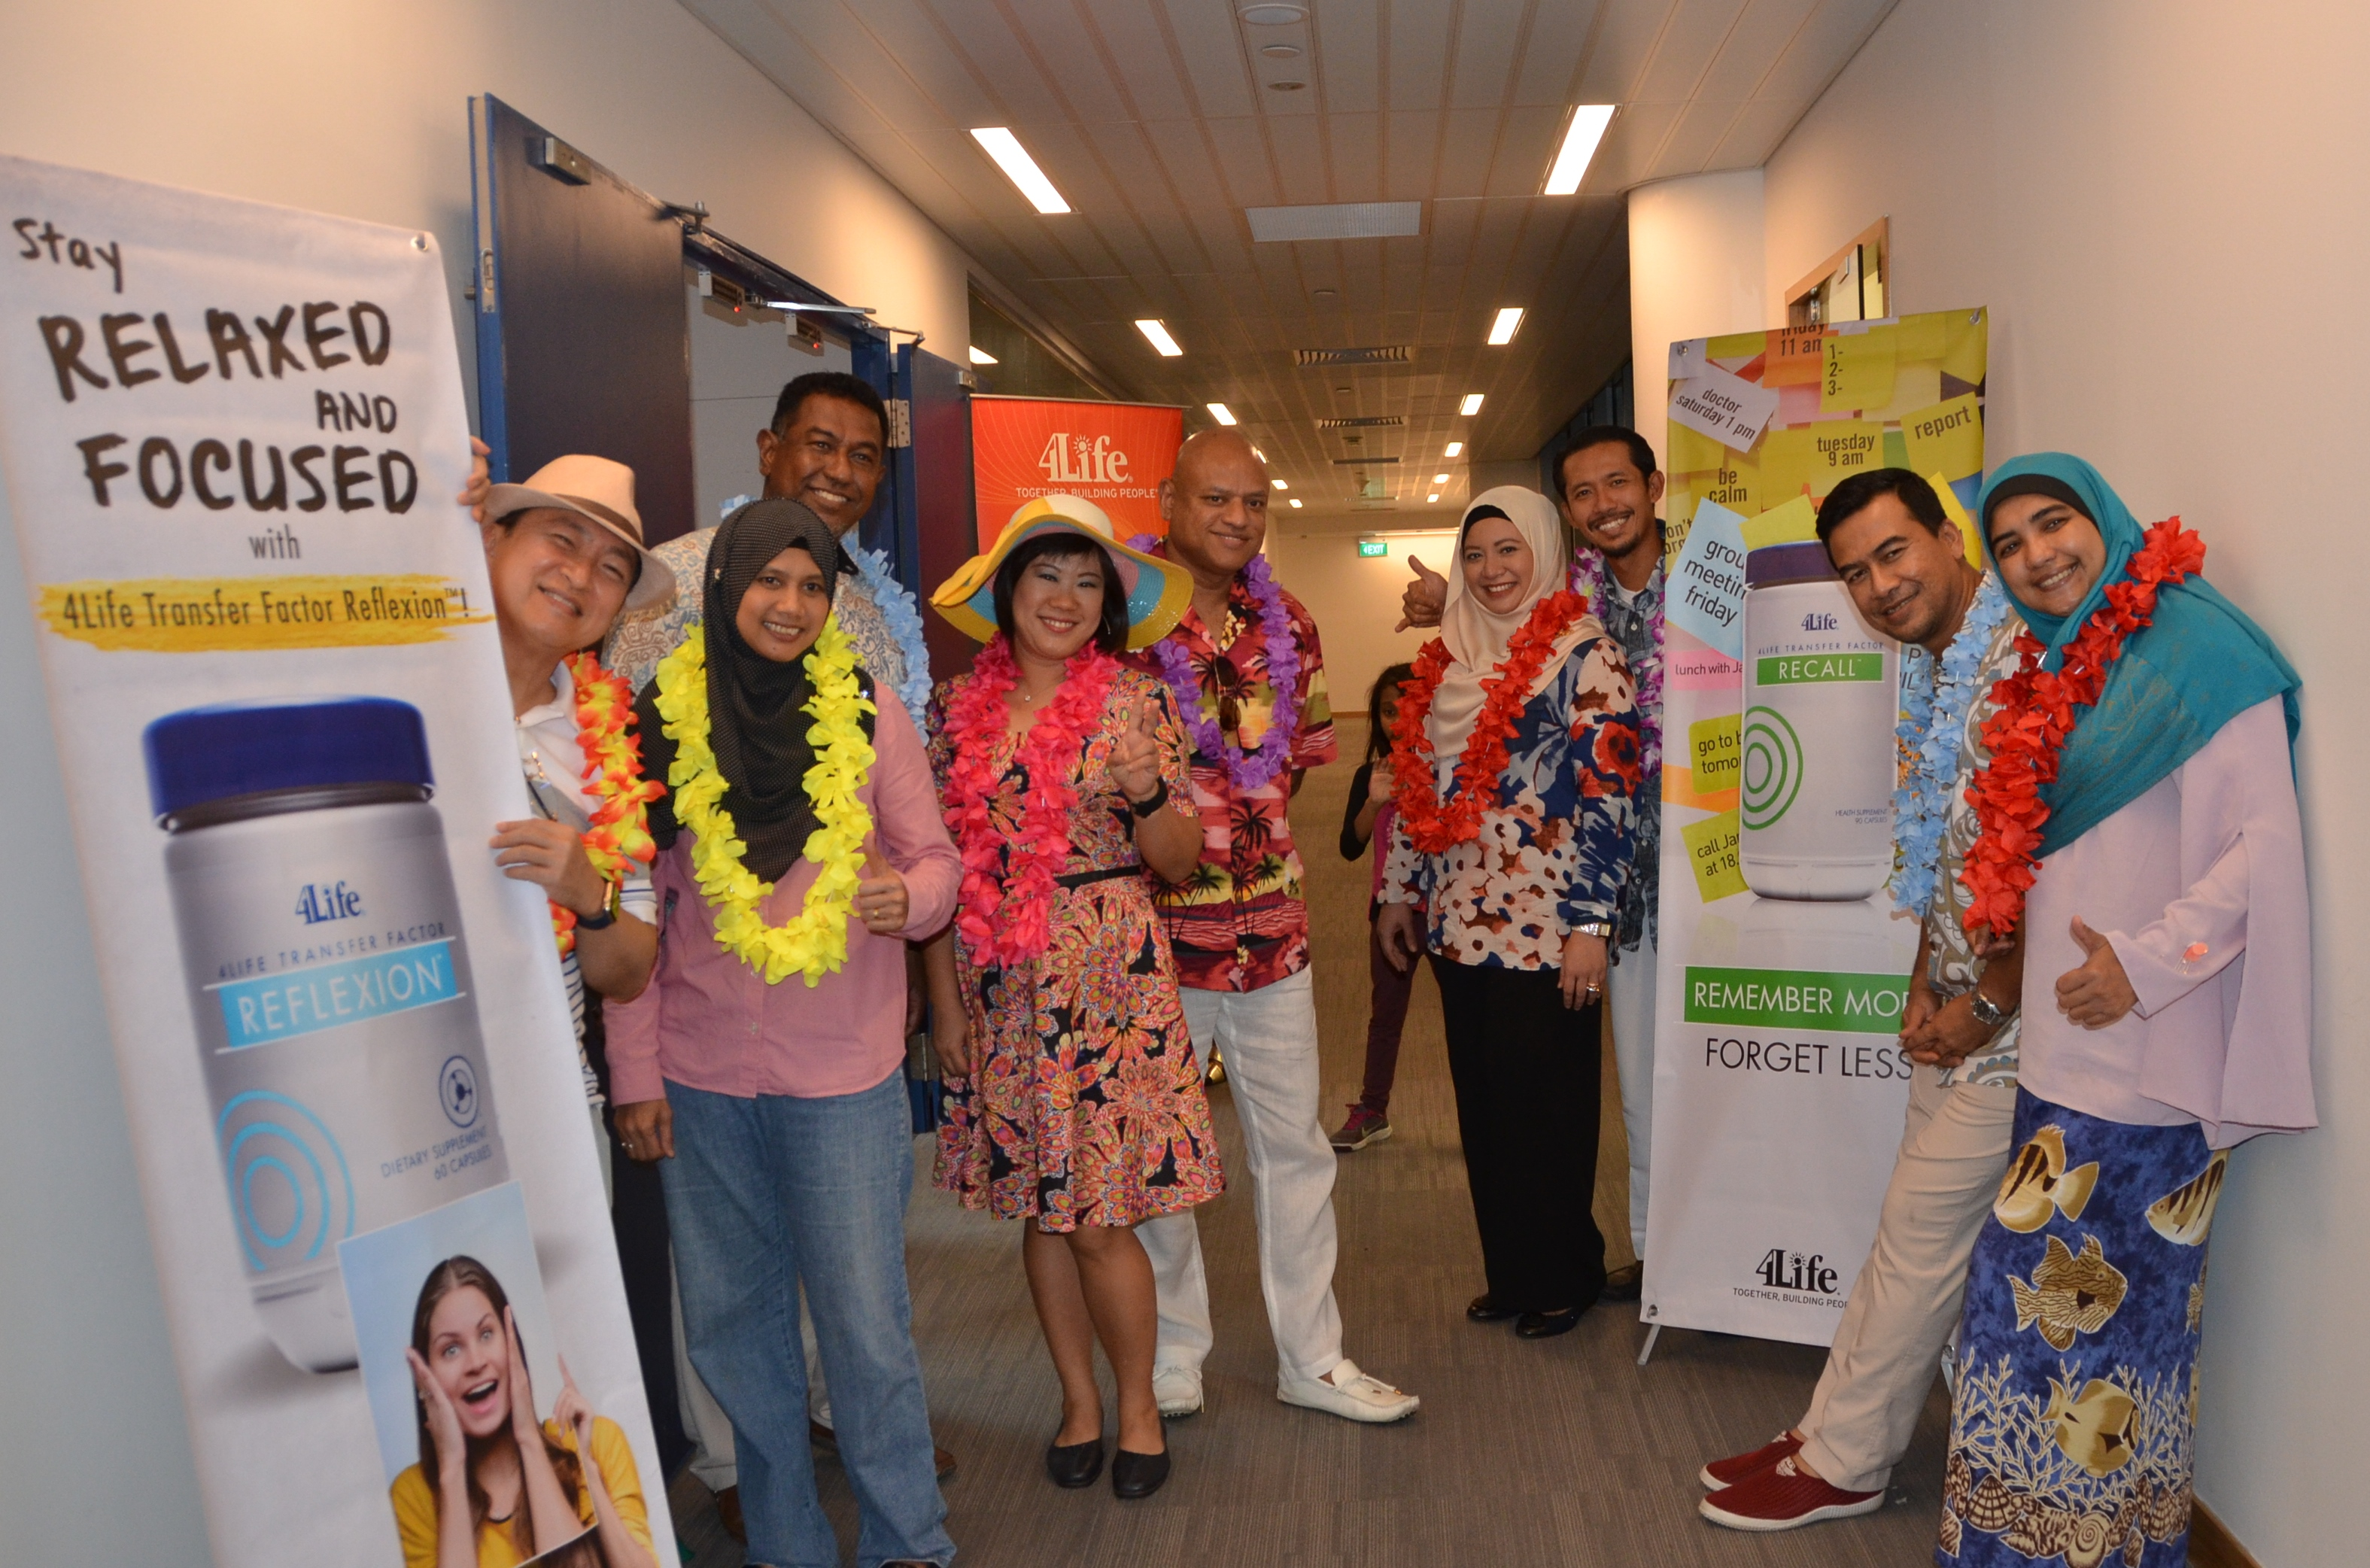 4Life Singapore Launches Two Products